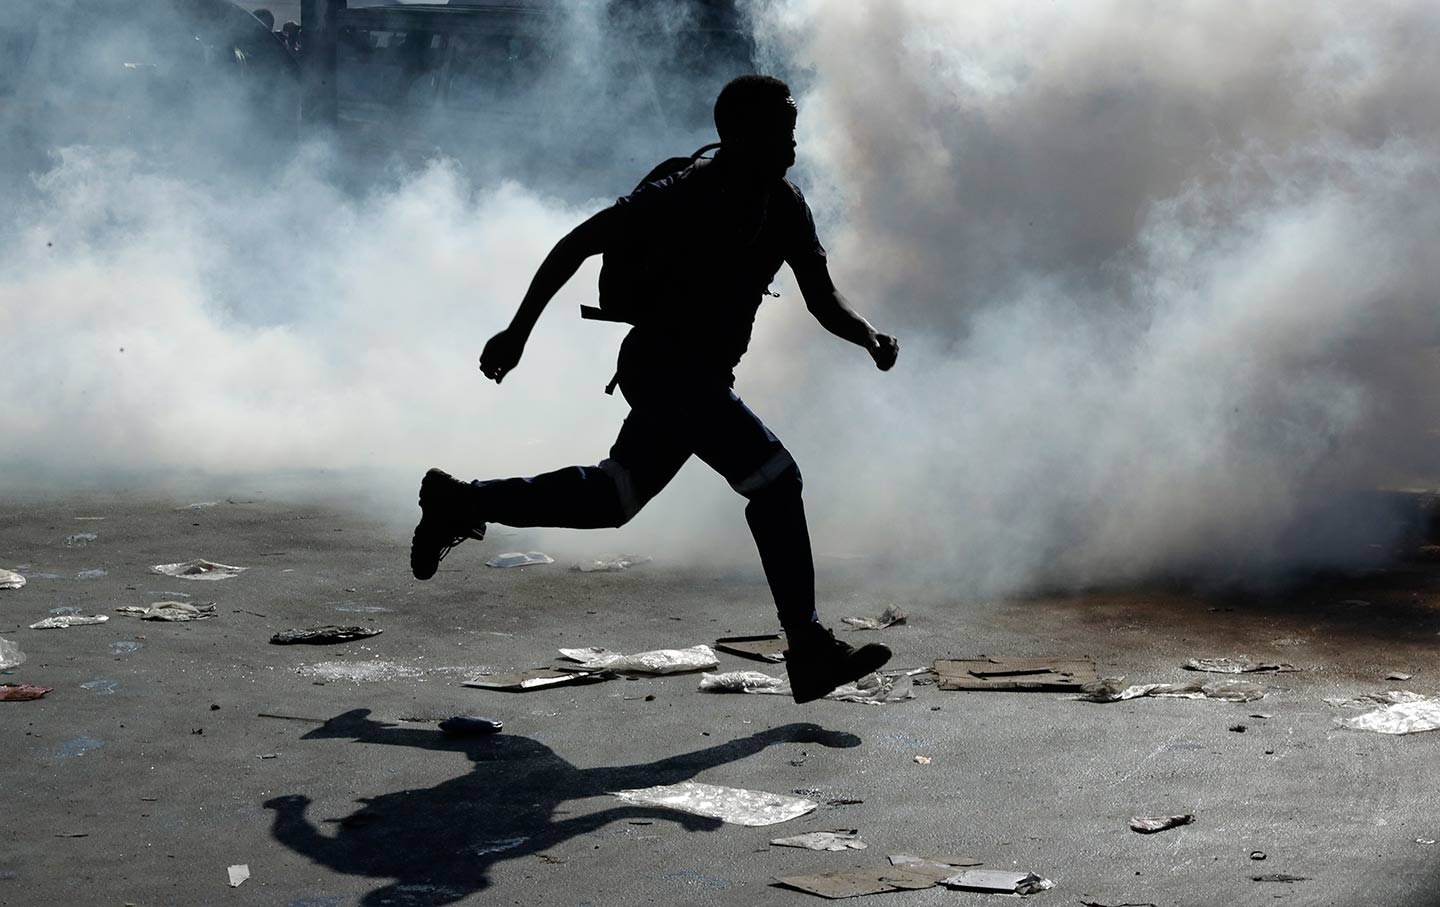 South Africa unrest in Johannesburg